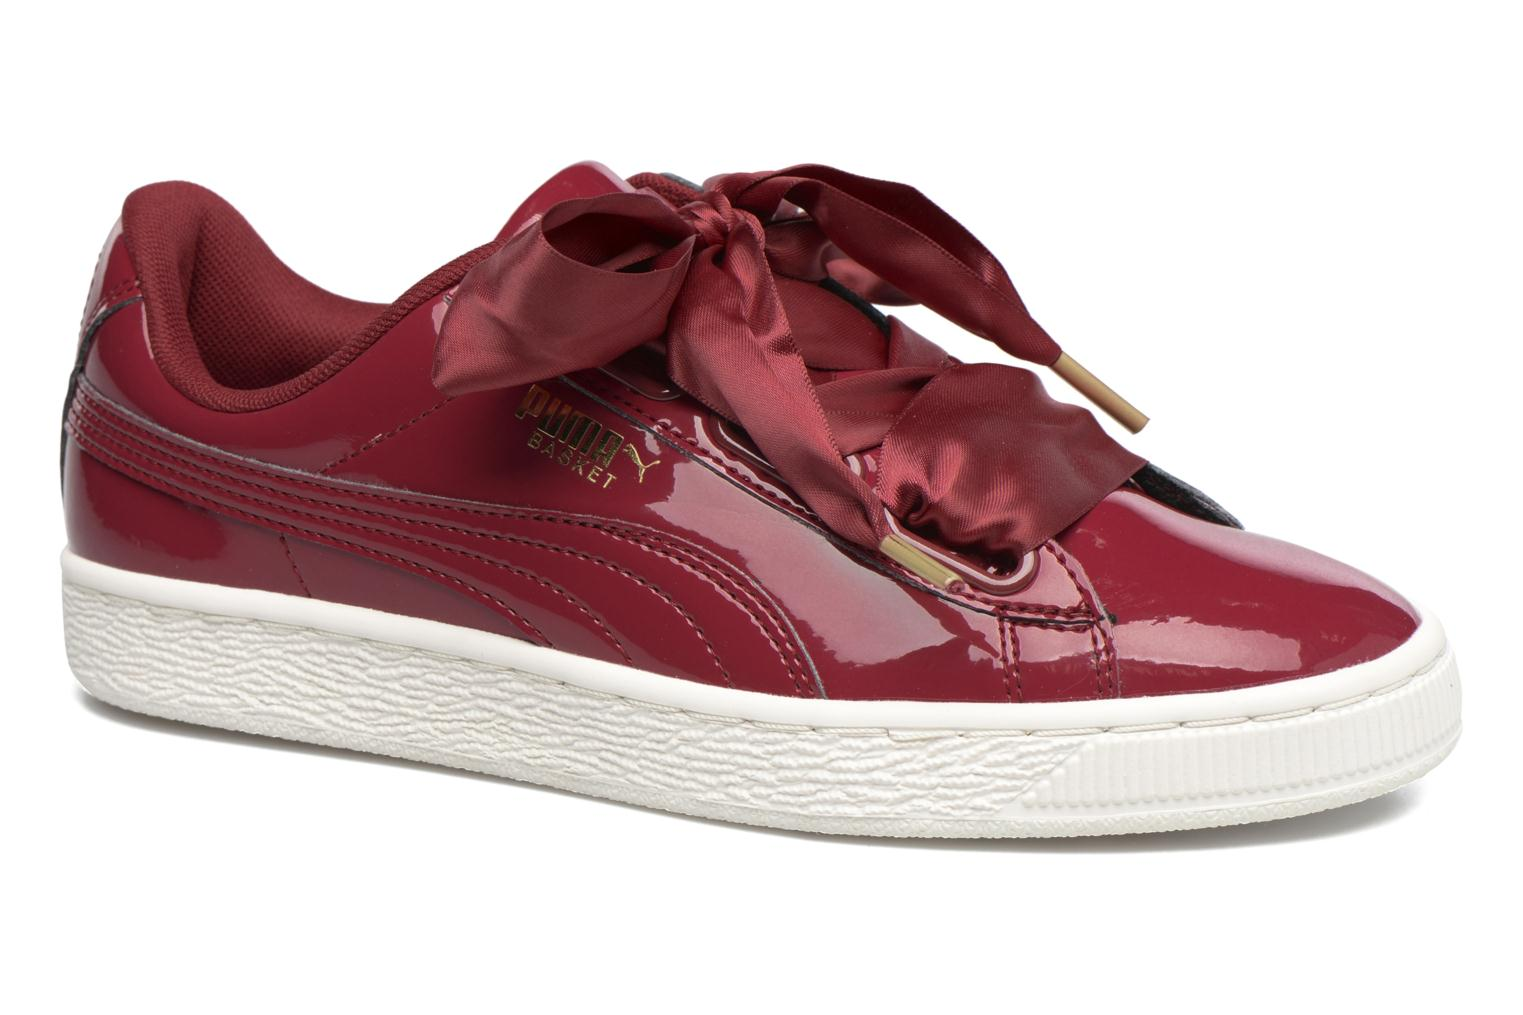 scarpe puma basket bordo